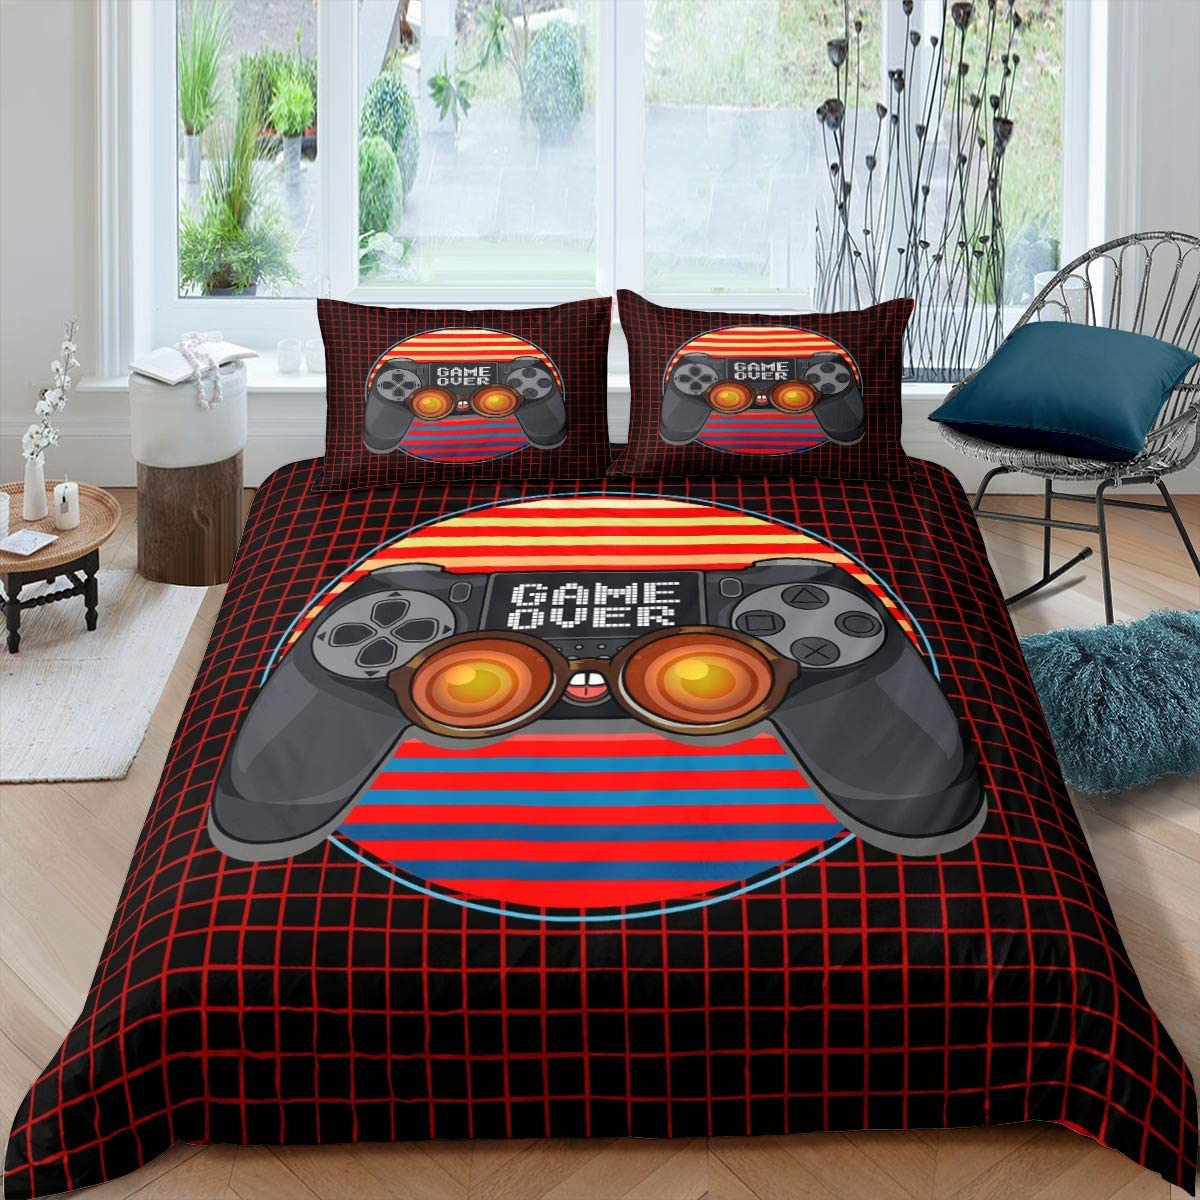 Feelyou Gamepad Print Duvet Cover for Kids Boys Girls Teens Gamer Video Game Comforter Cover Gamepad Pattern Bedding Set Youth Modern Geometric Black Red Buffalo Checked Decor Bedspread Cover